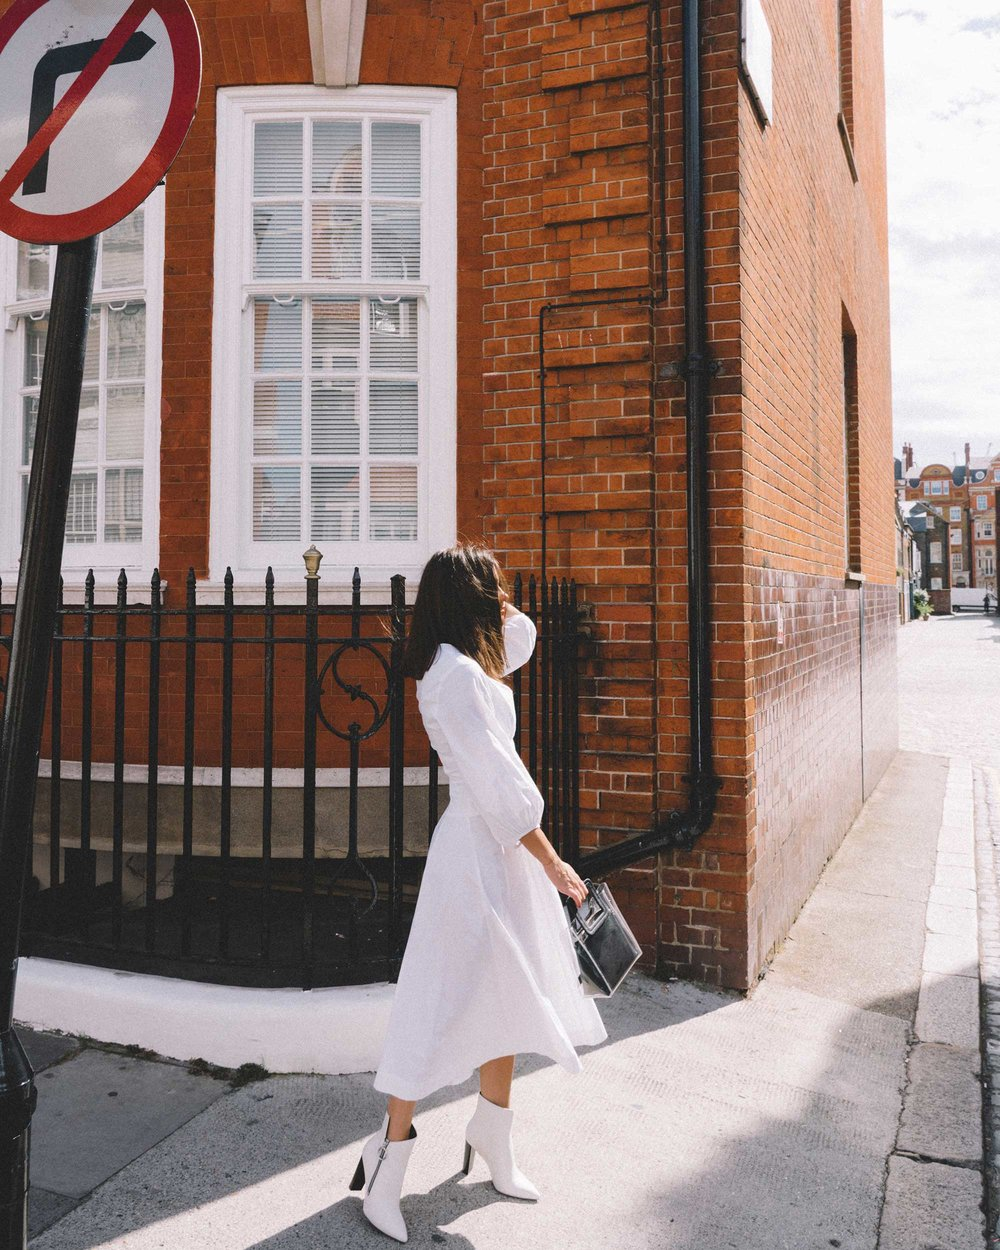 STAUD Eden Midi Dress, STAUD clear and black shirley mini PVC and leather tote, London Fashion Week Outfit15.jpg